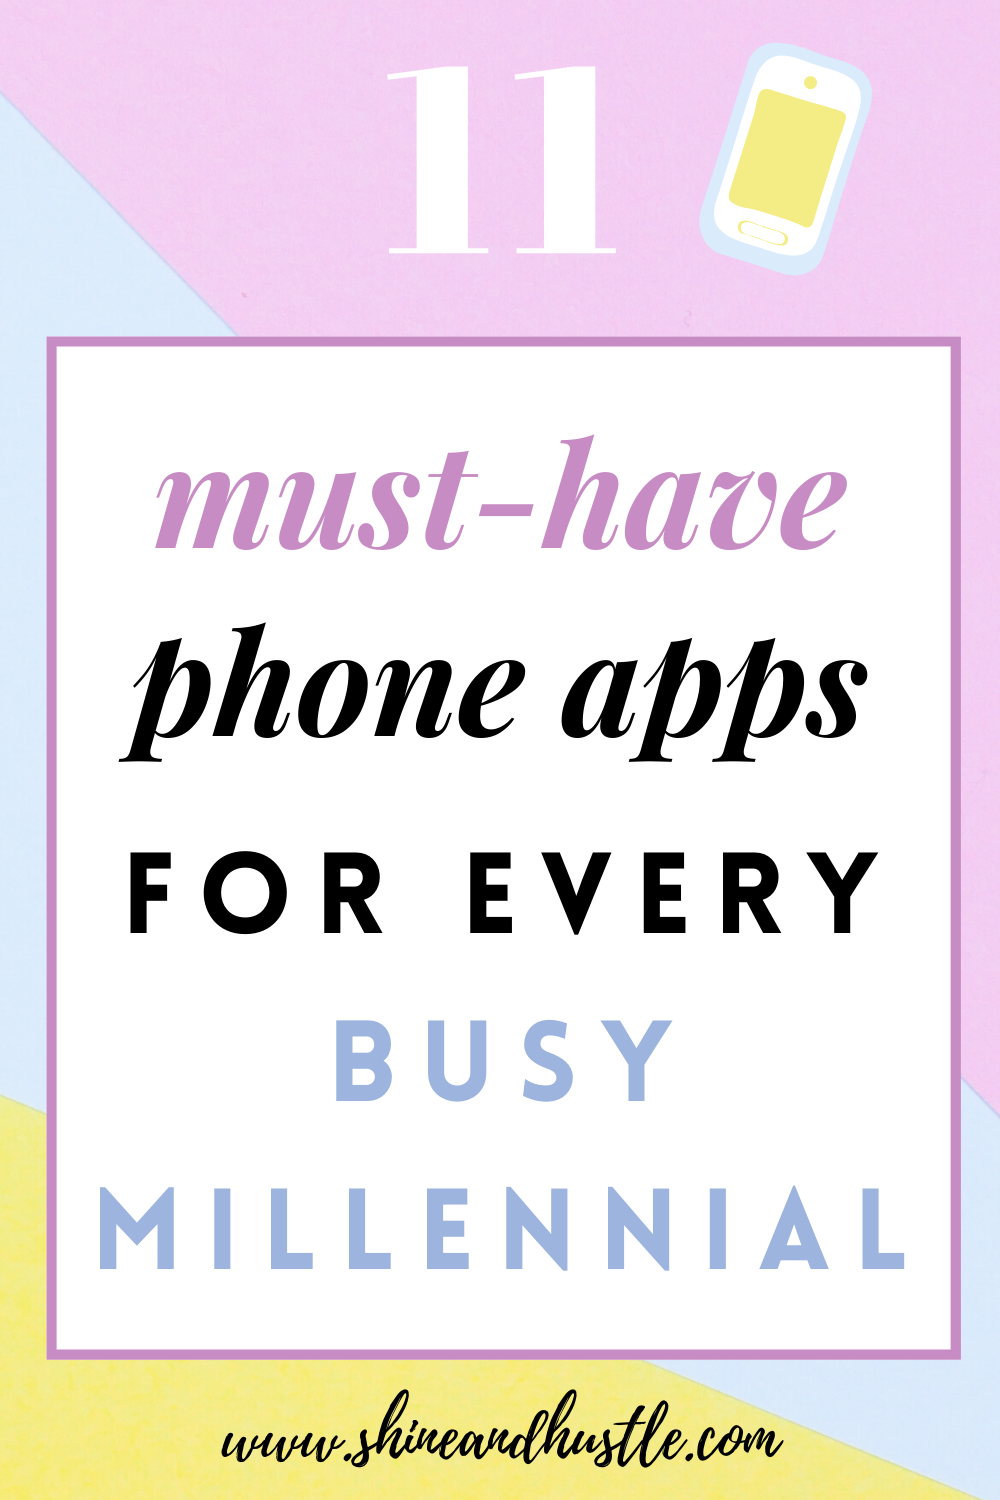 11 MustHave Phone Apps For Every Busy Millennial in 2020